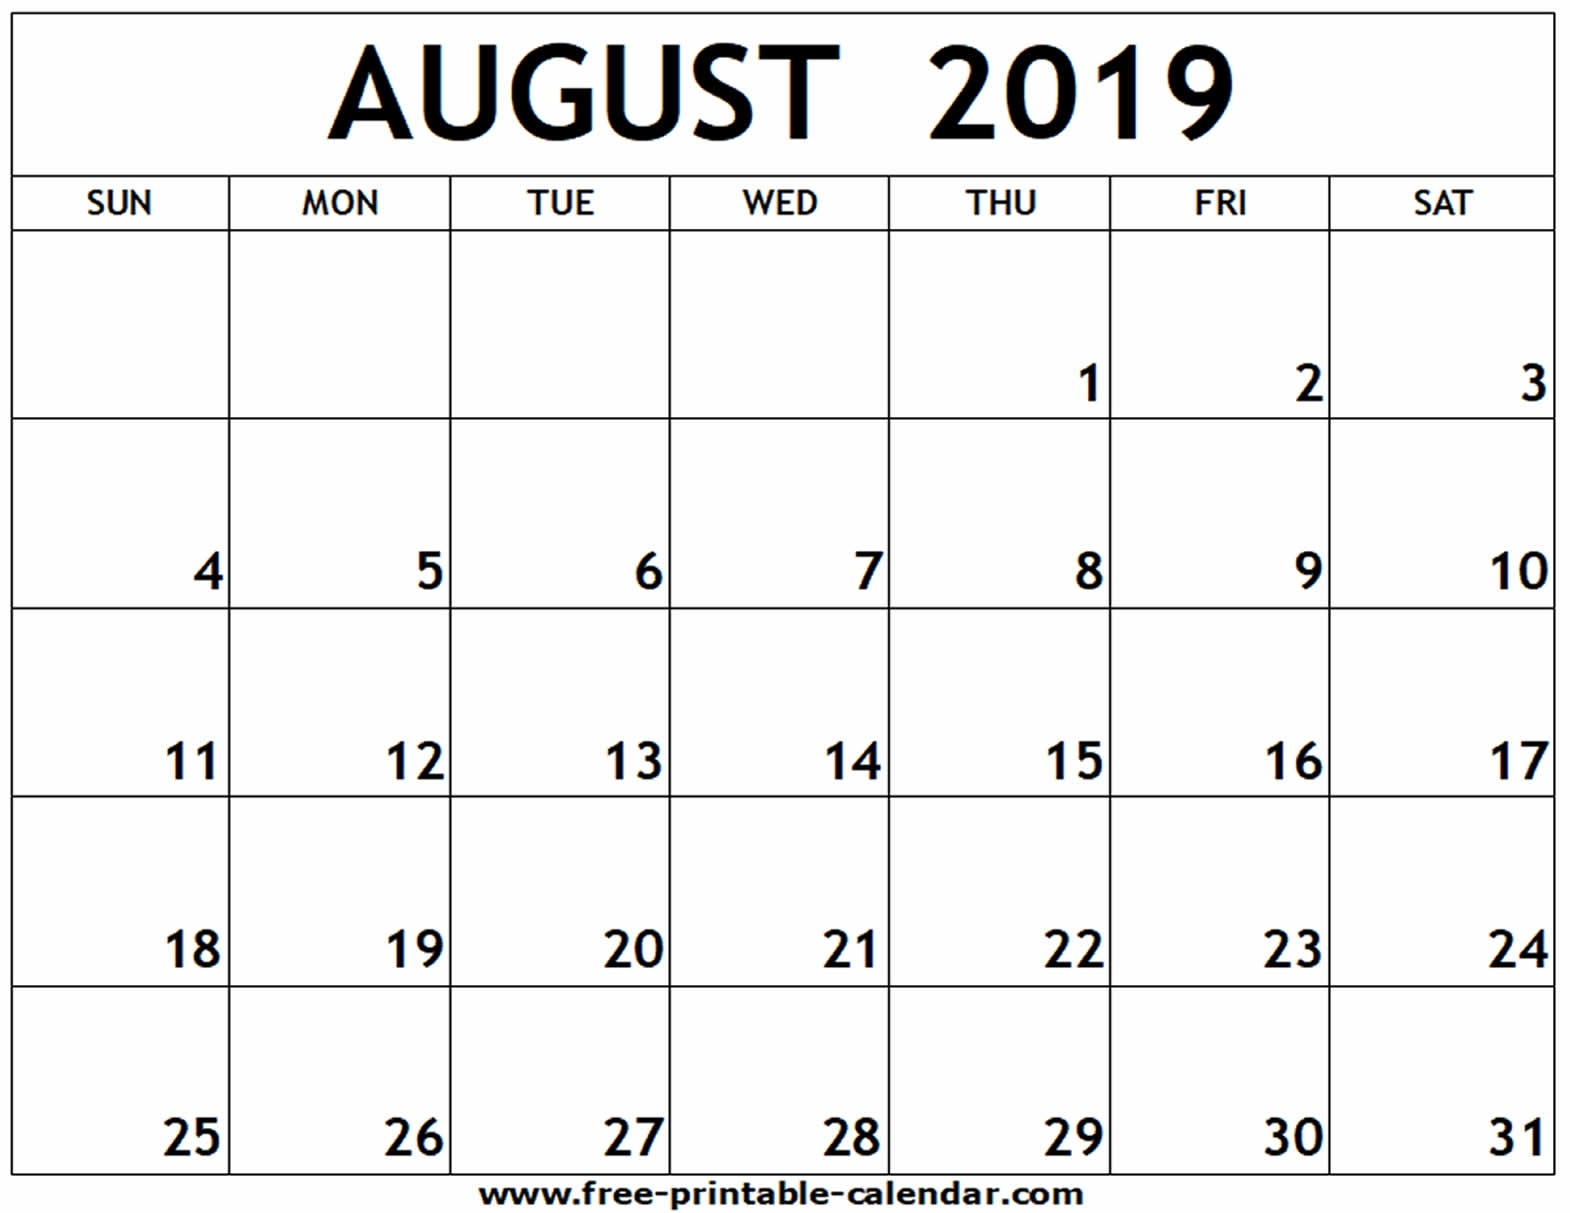 Catch August To December 2019 Printable Calendar ⋆ The Best